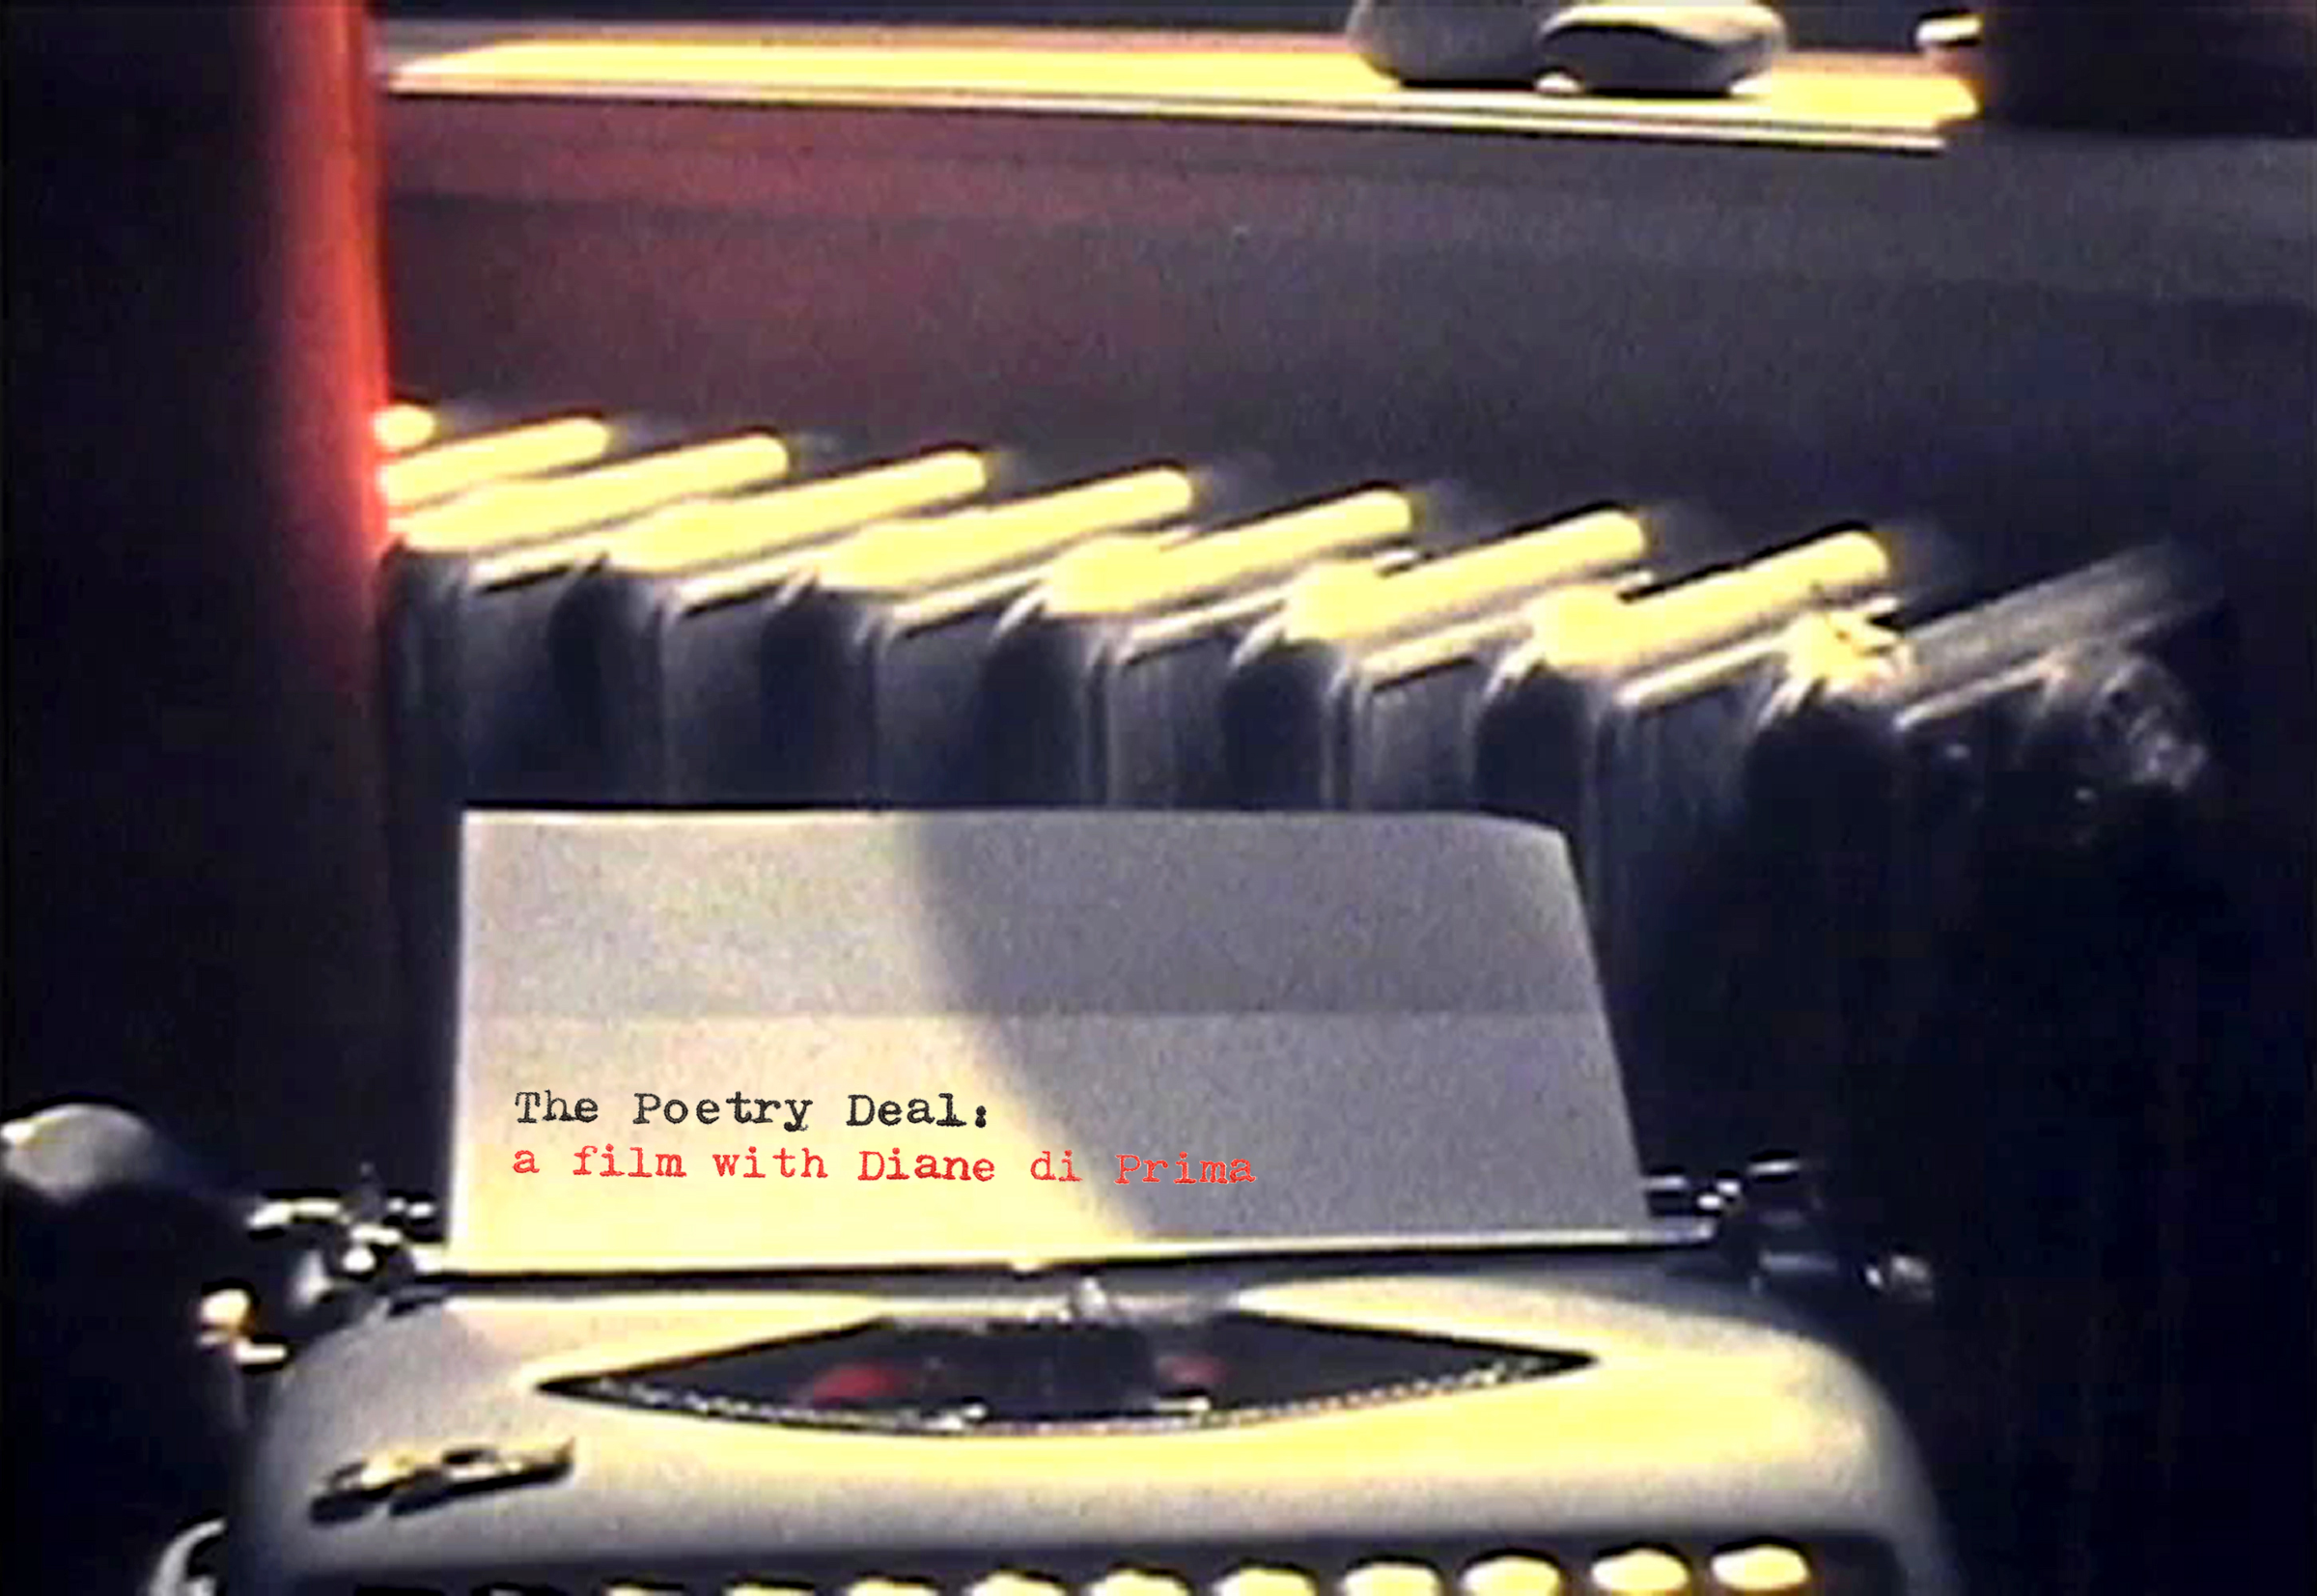 typewriter-with film title300.png